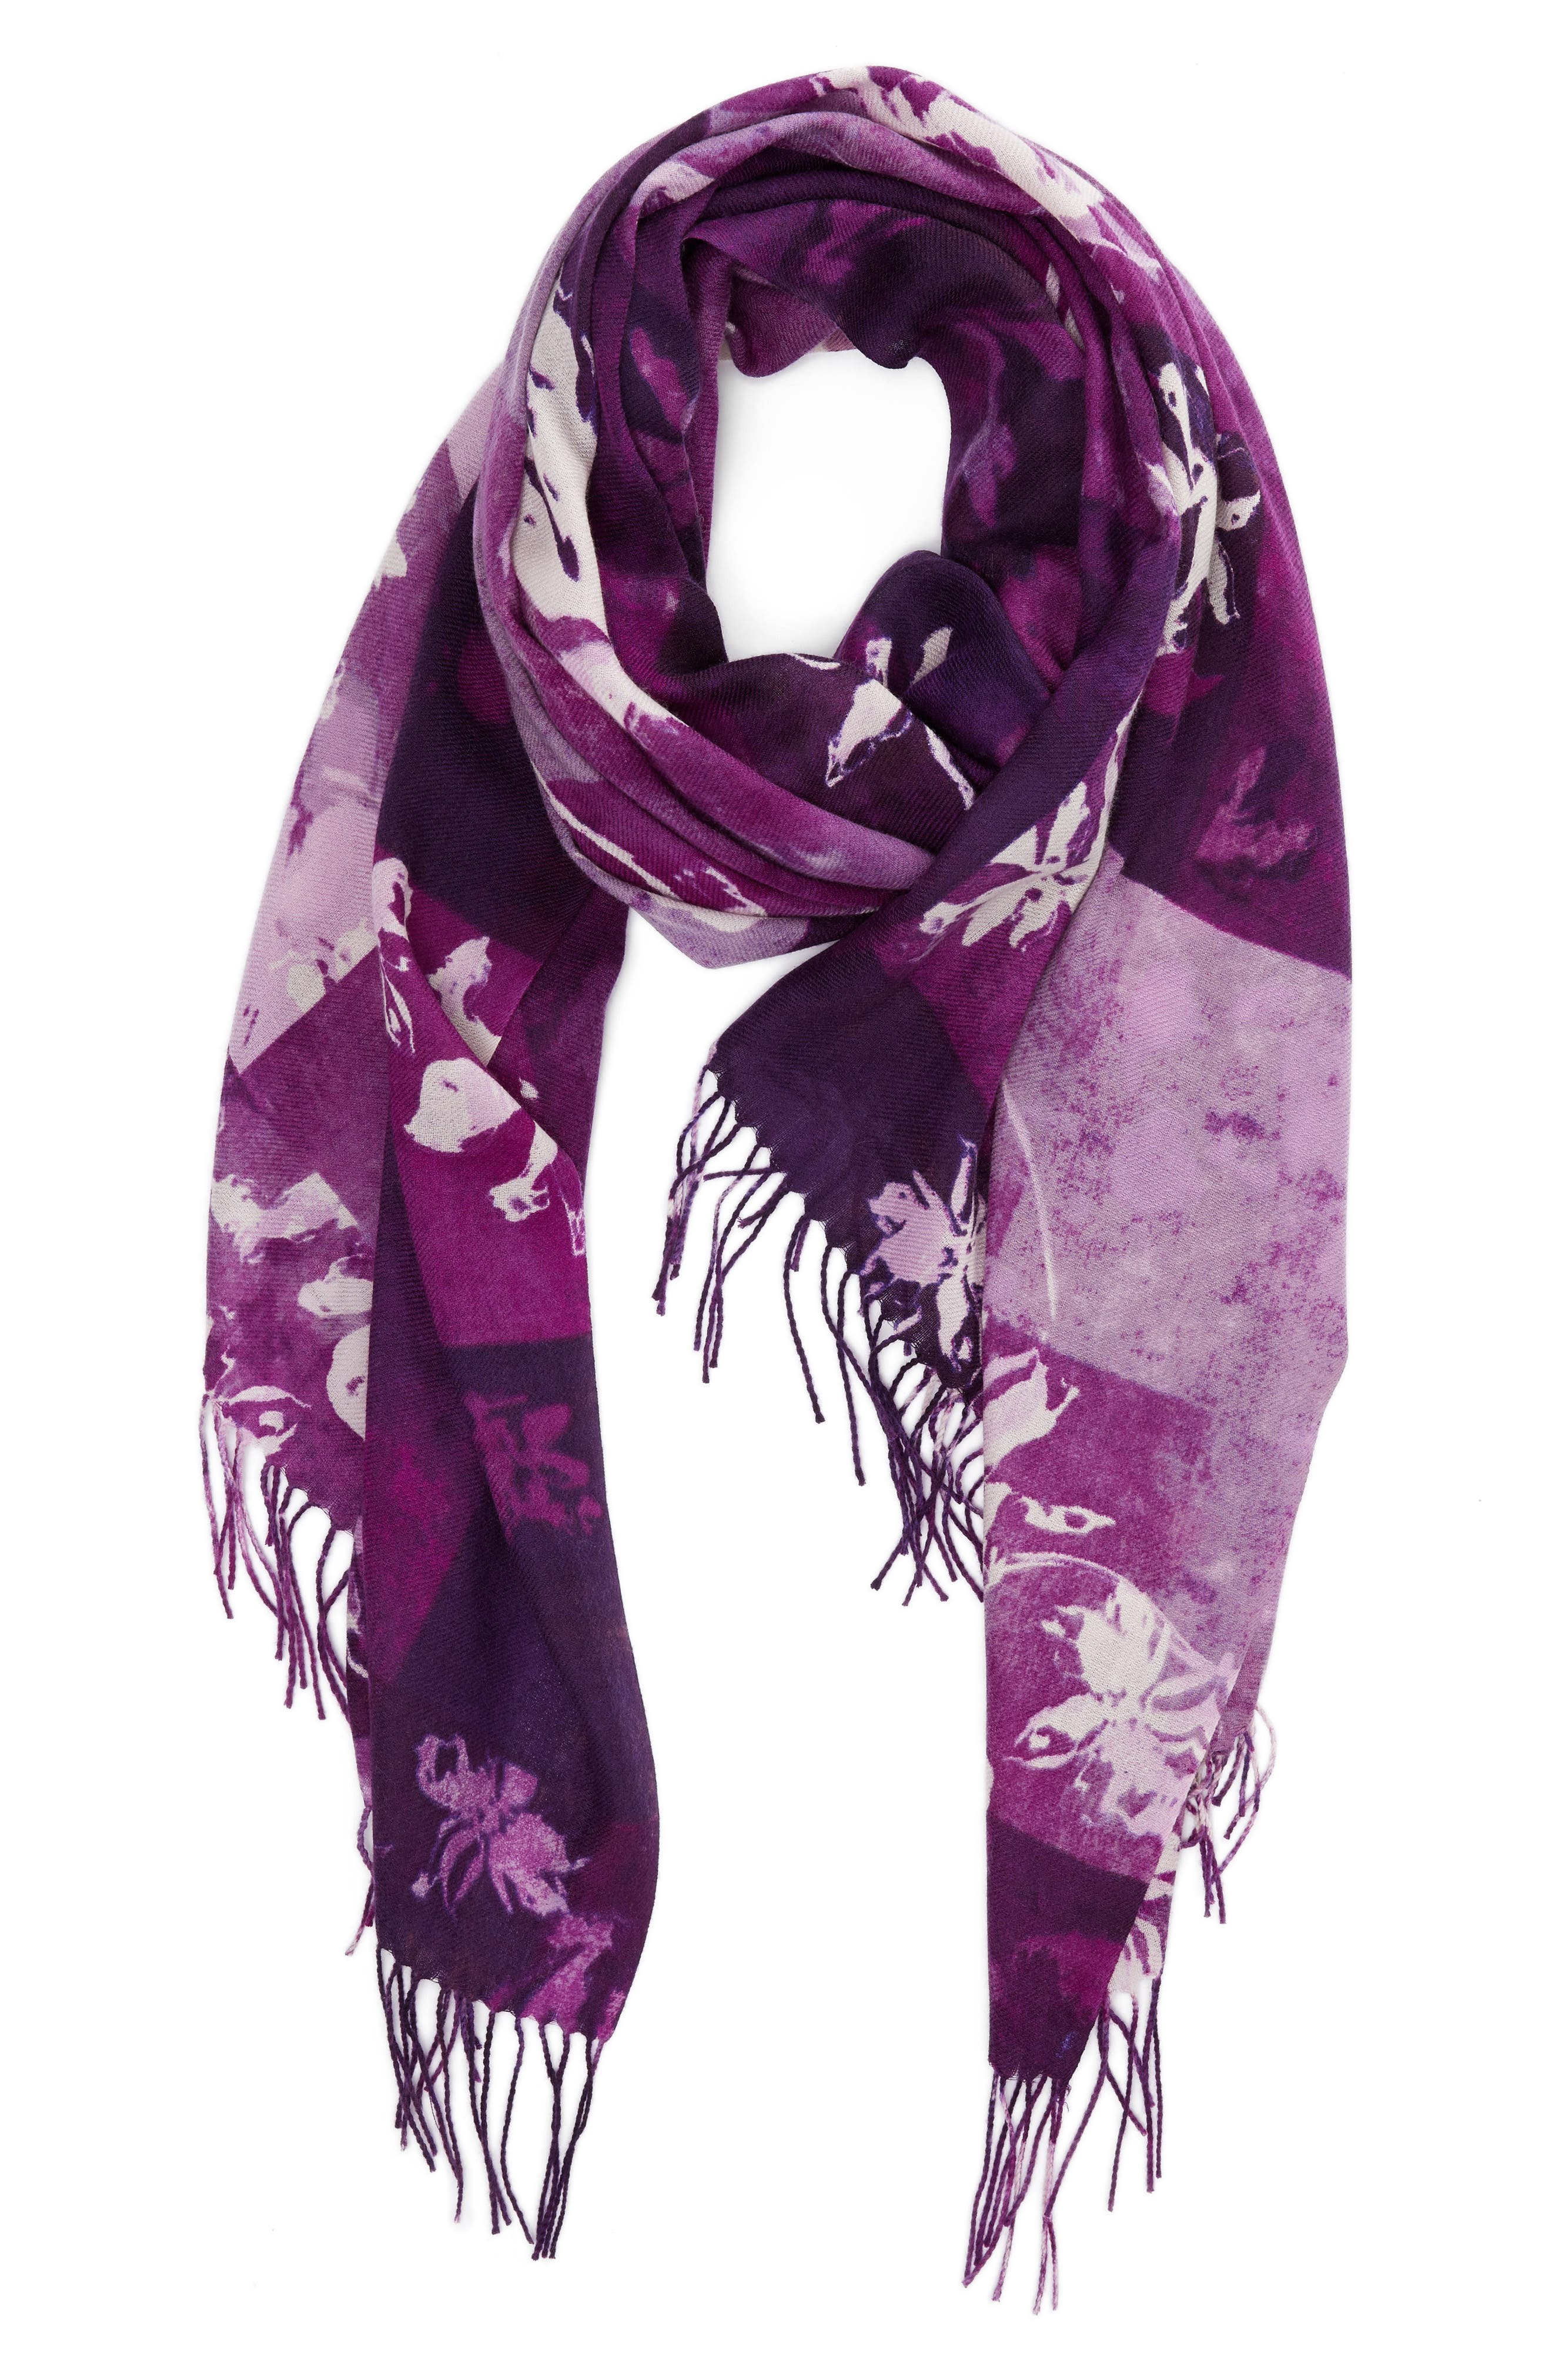 Solar Patchwork Tissue Wool & Cashmere Scarf,                             Alternate thumbnail 6, color,